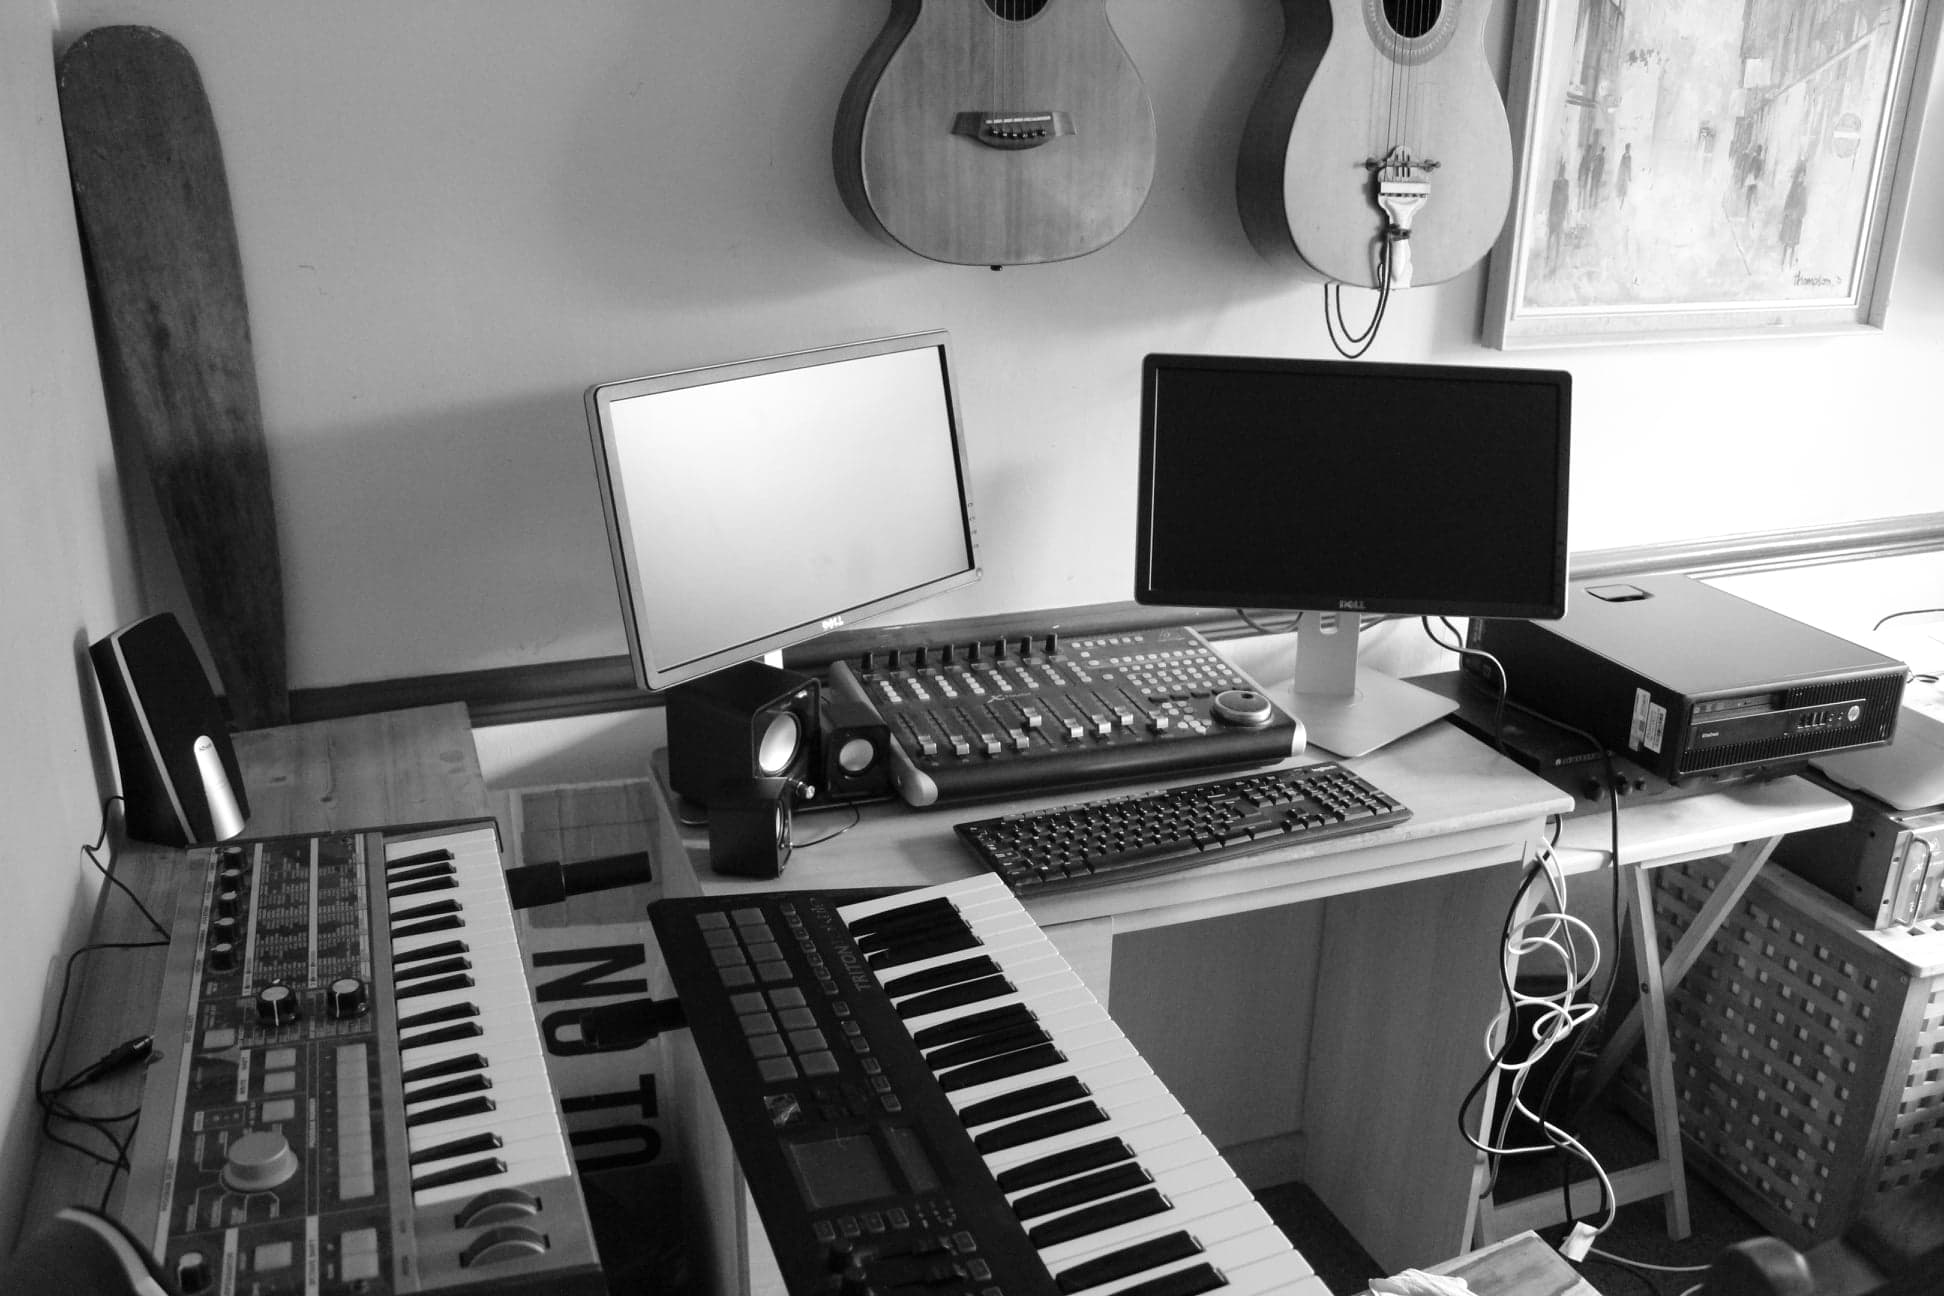 Some photo's of the new studio set-up